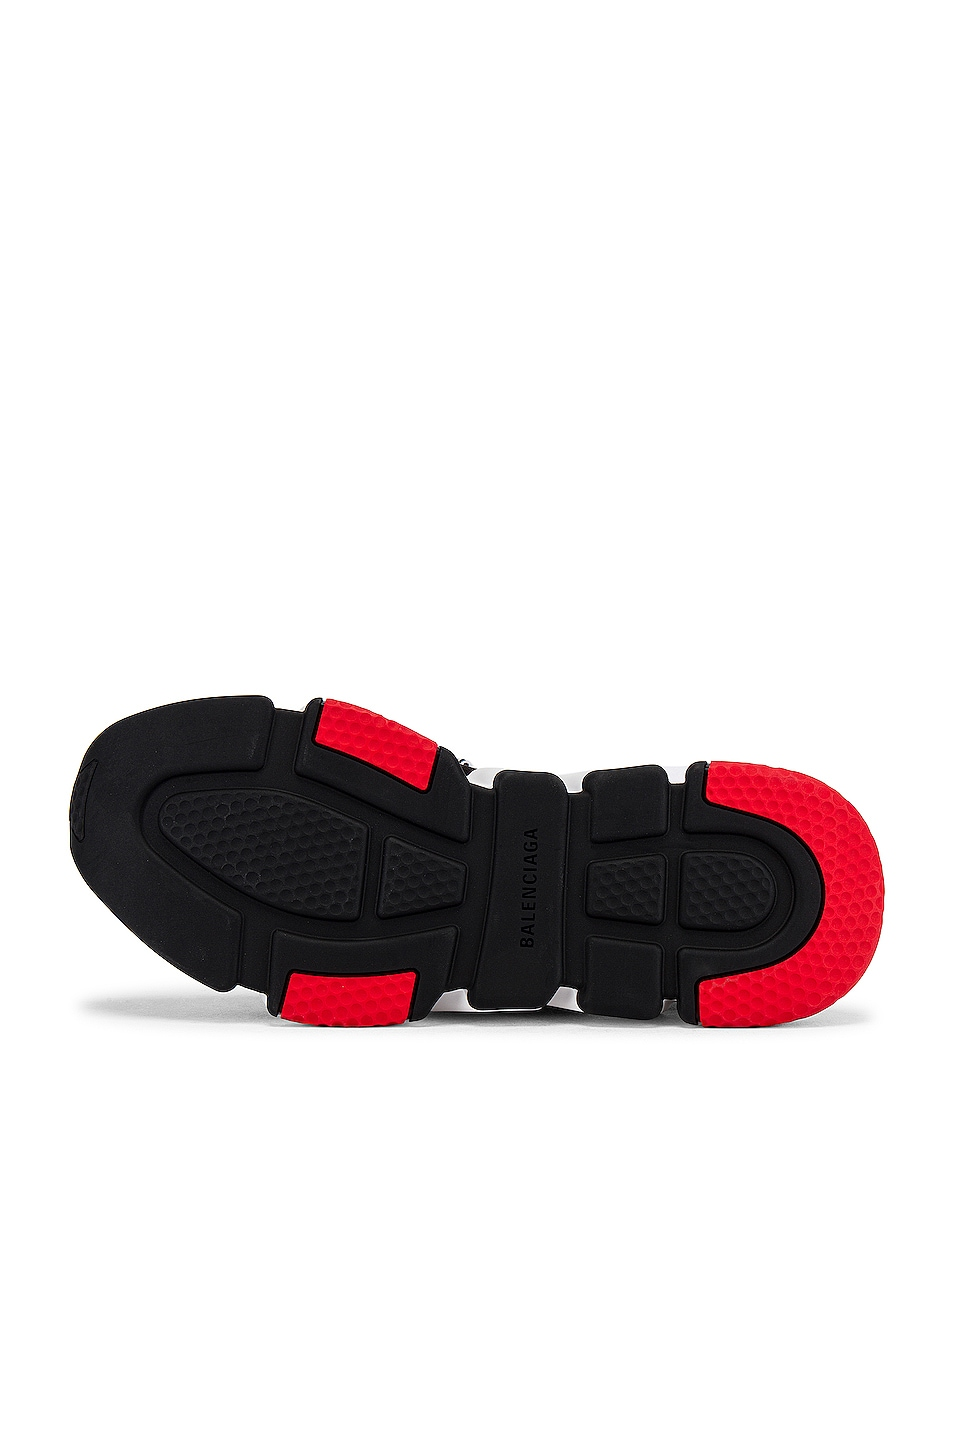 Image 6 of Balenciaga Speed Light Sneaker Lace Up in Black & White & Red & Black